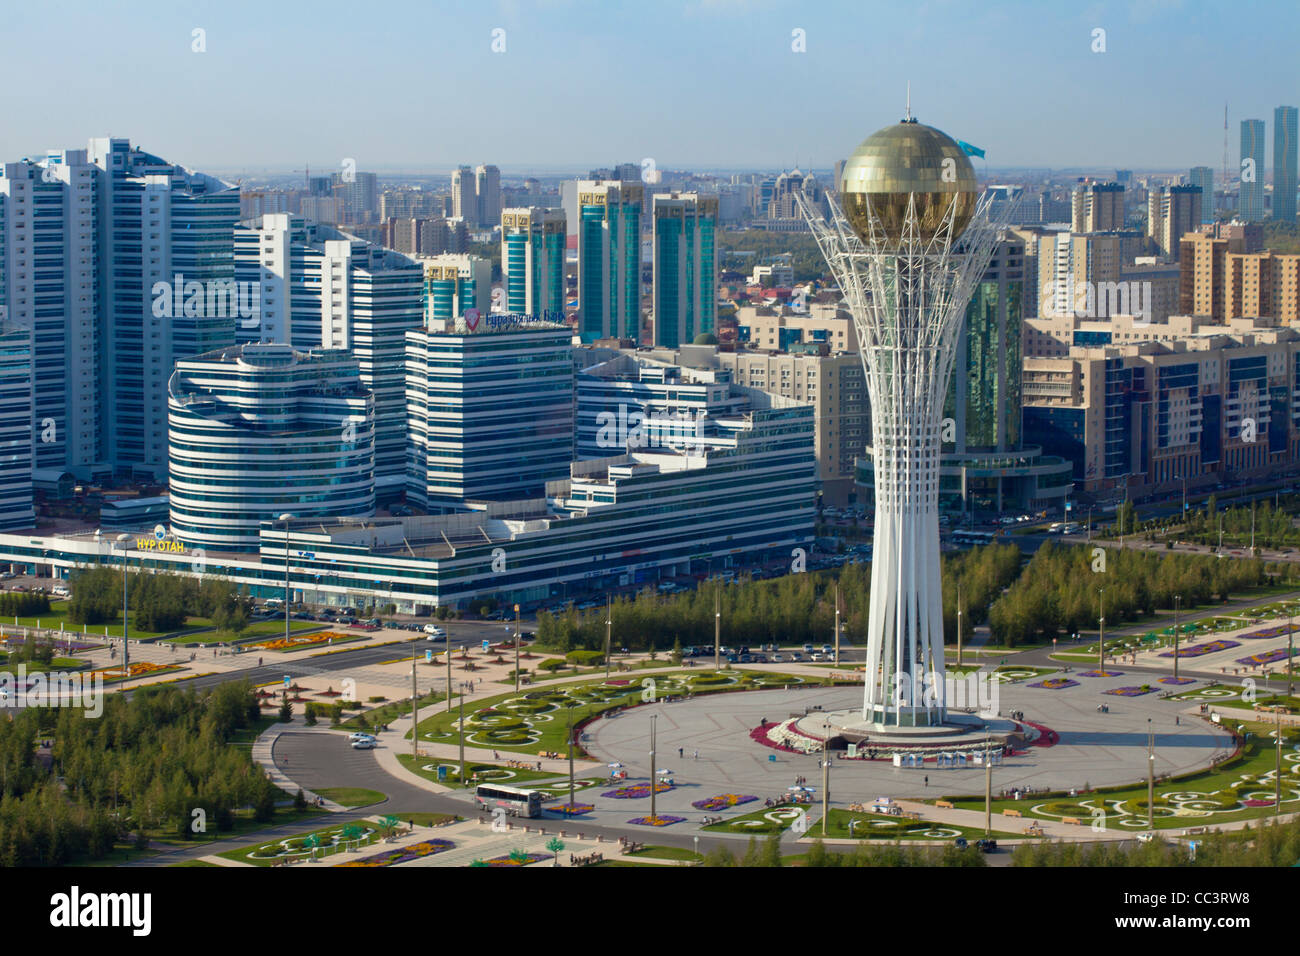 Kazakhstan, Astana, View of City Center looking towards the Bayterek Tower - Stock Image